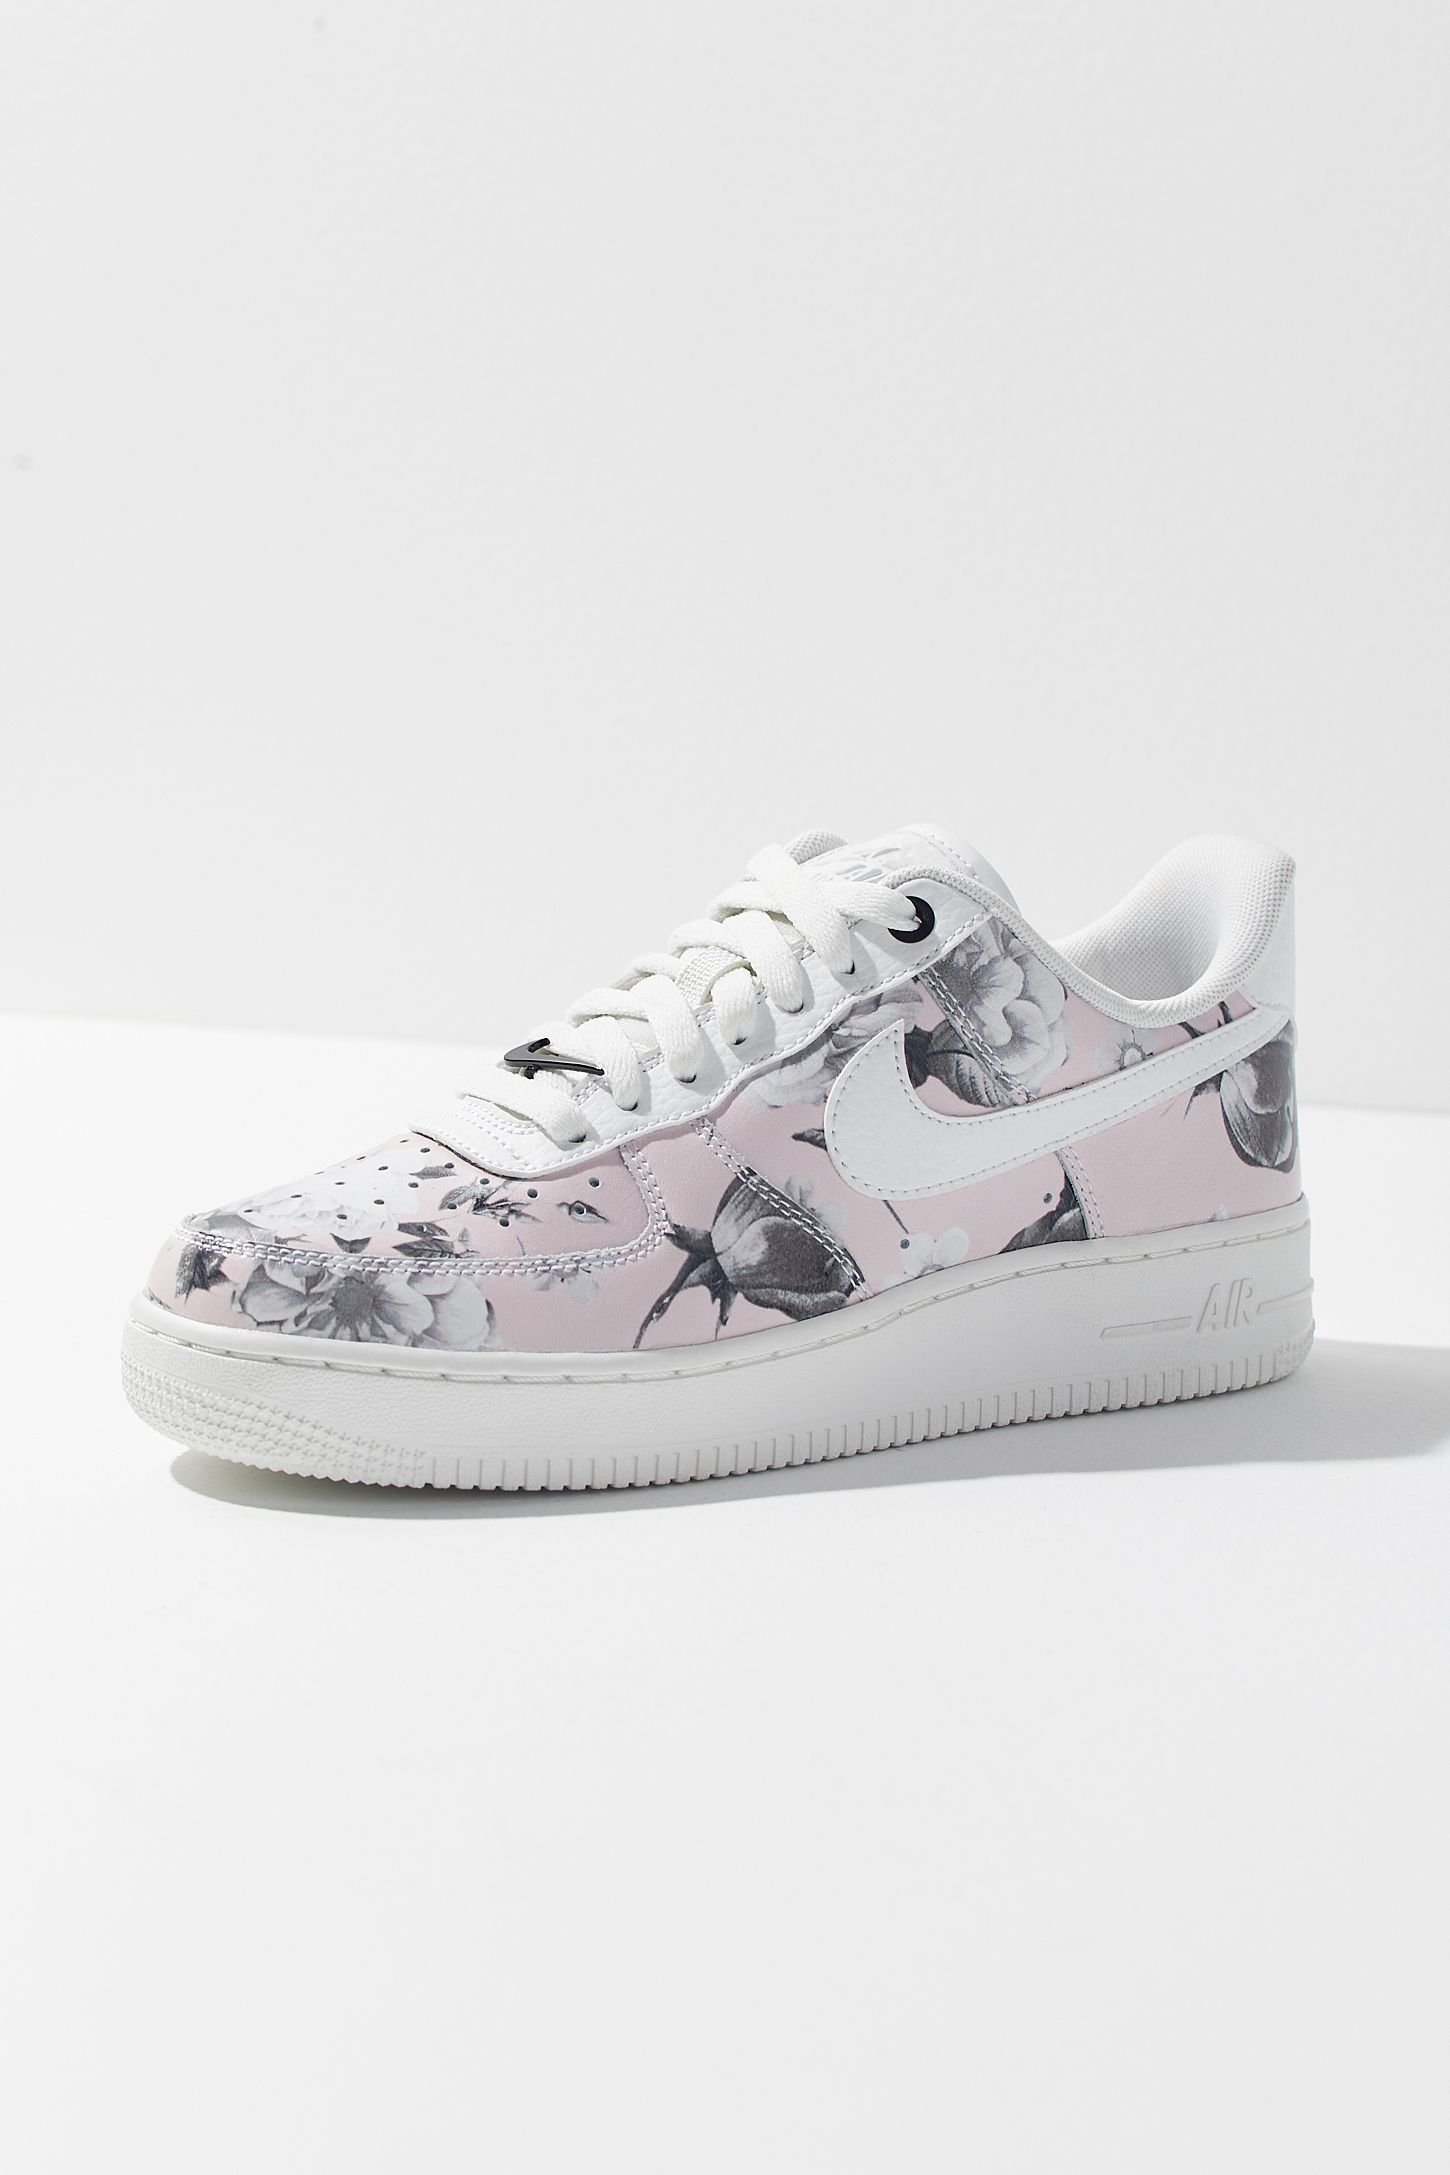 separation shoes 8a920 7e78a Nike Air Force 1  07 LXX Sneaker   Urban Outfitters